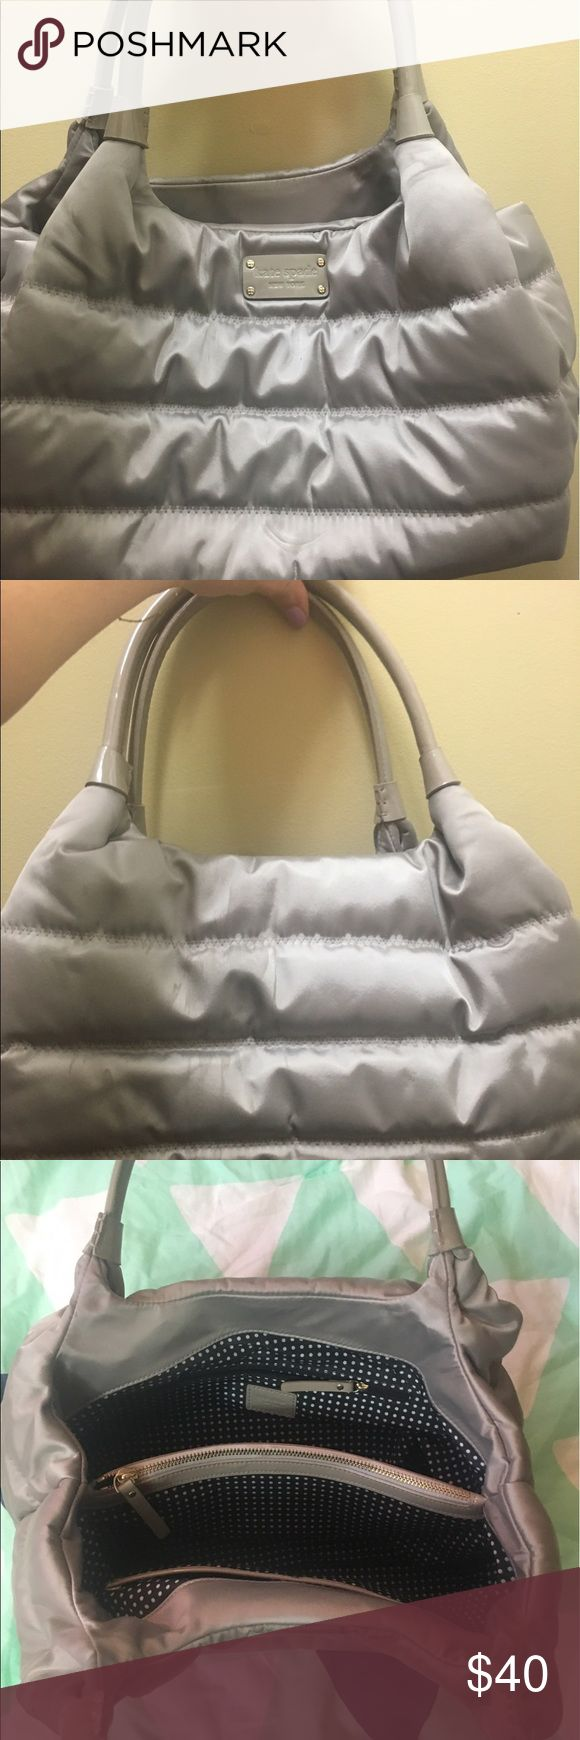 Kate Spade shoulder bag Nylon Kate Spade puffy bag with patent leather handles. Classic Kate spade polka dot interior lining. Inside and outside in good condition! kate spade Bags Shoulder Bags